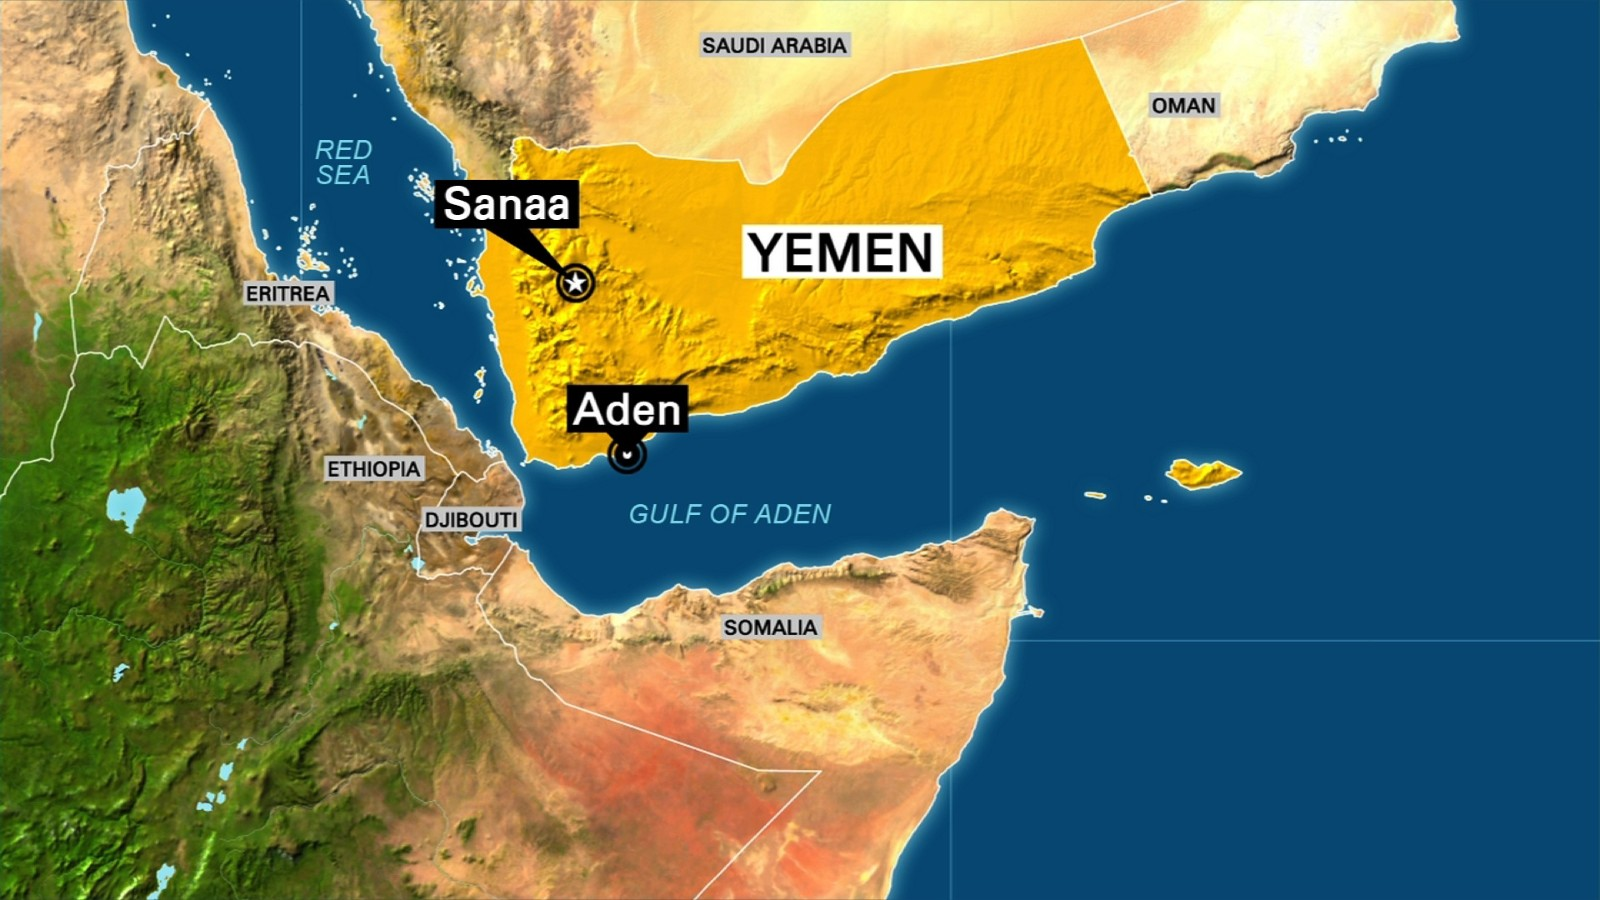 US Navy seizes weapons from boat in Gulf of Aden - CNNPolitics